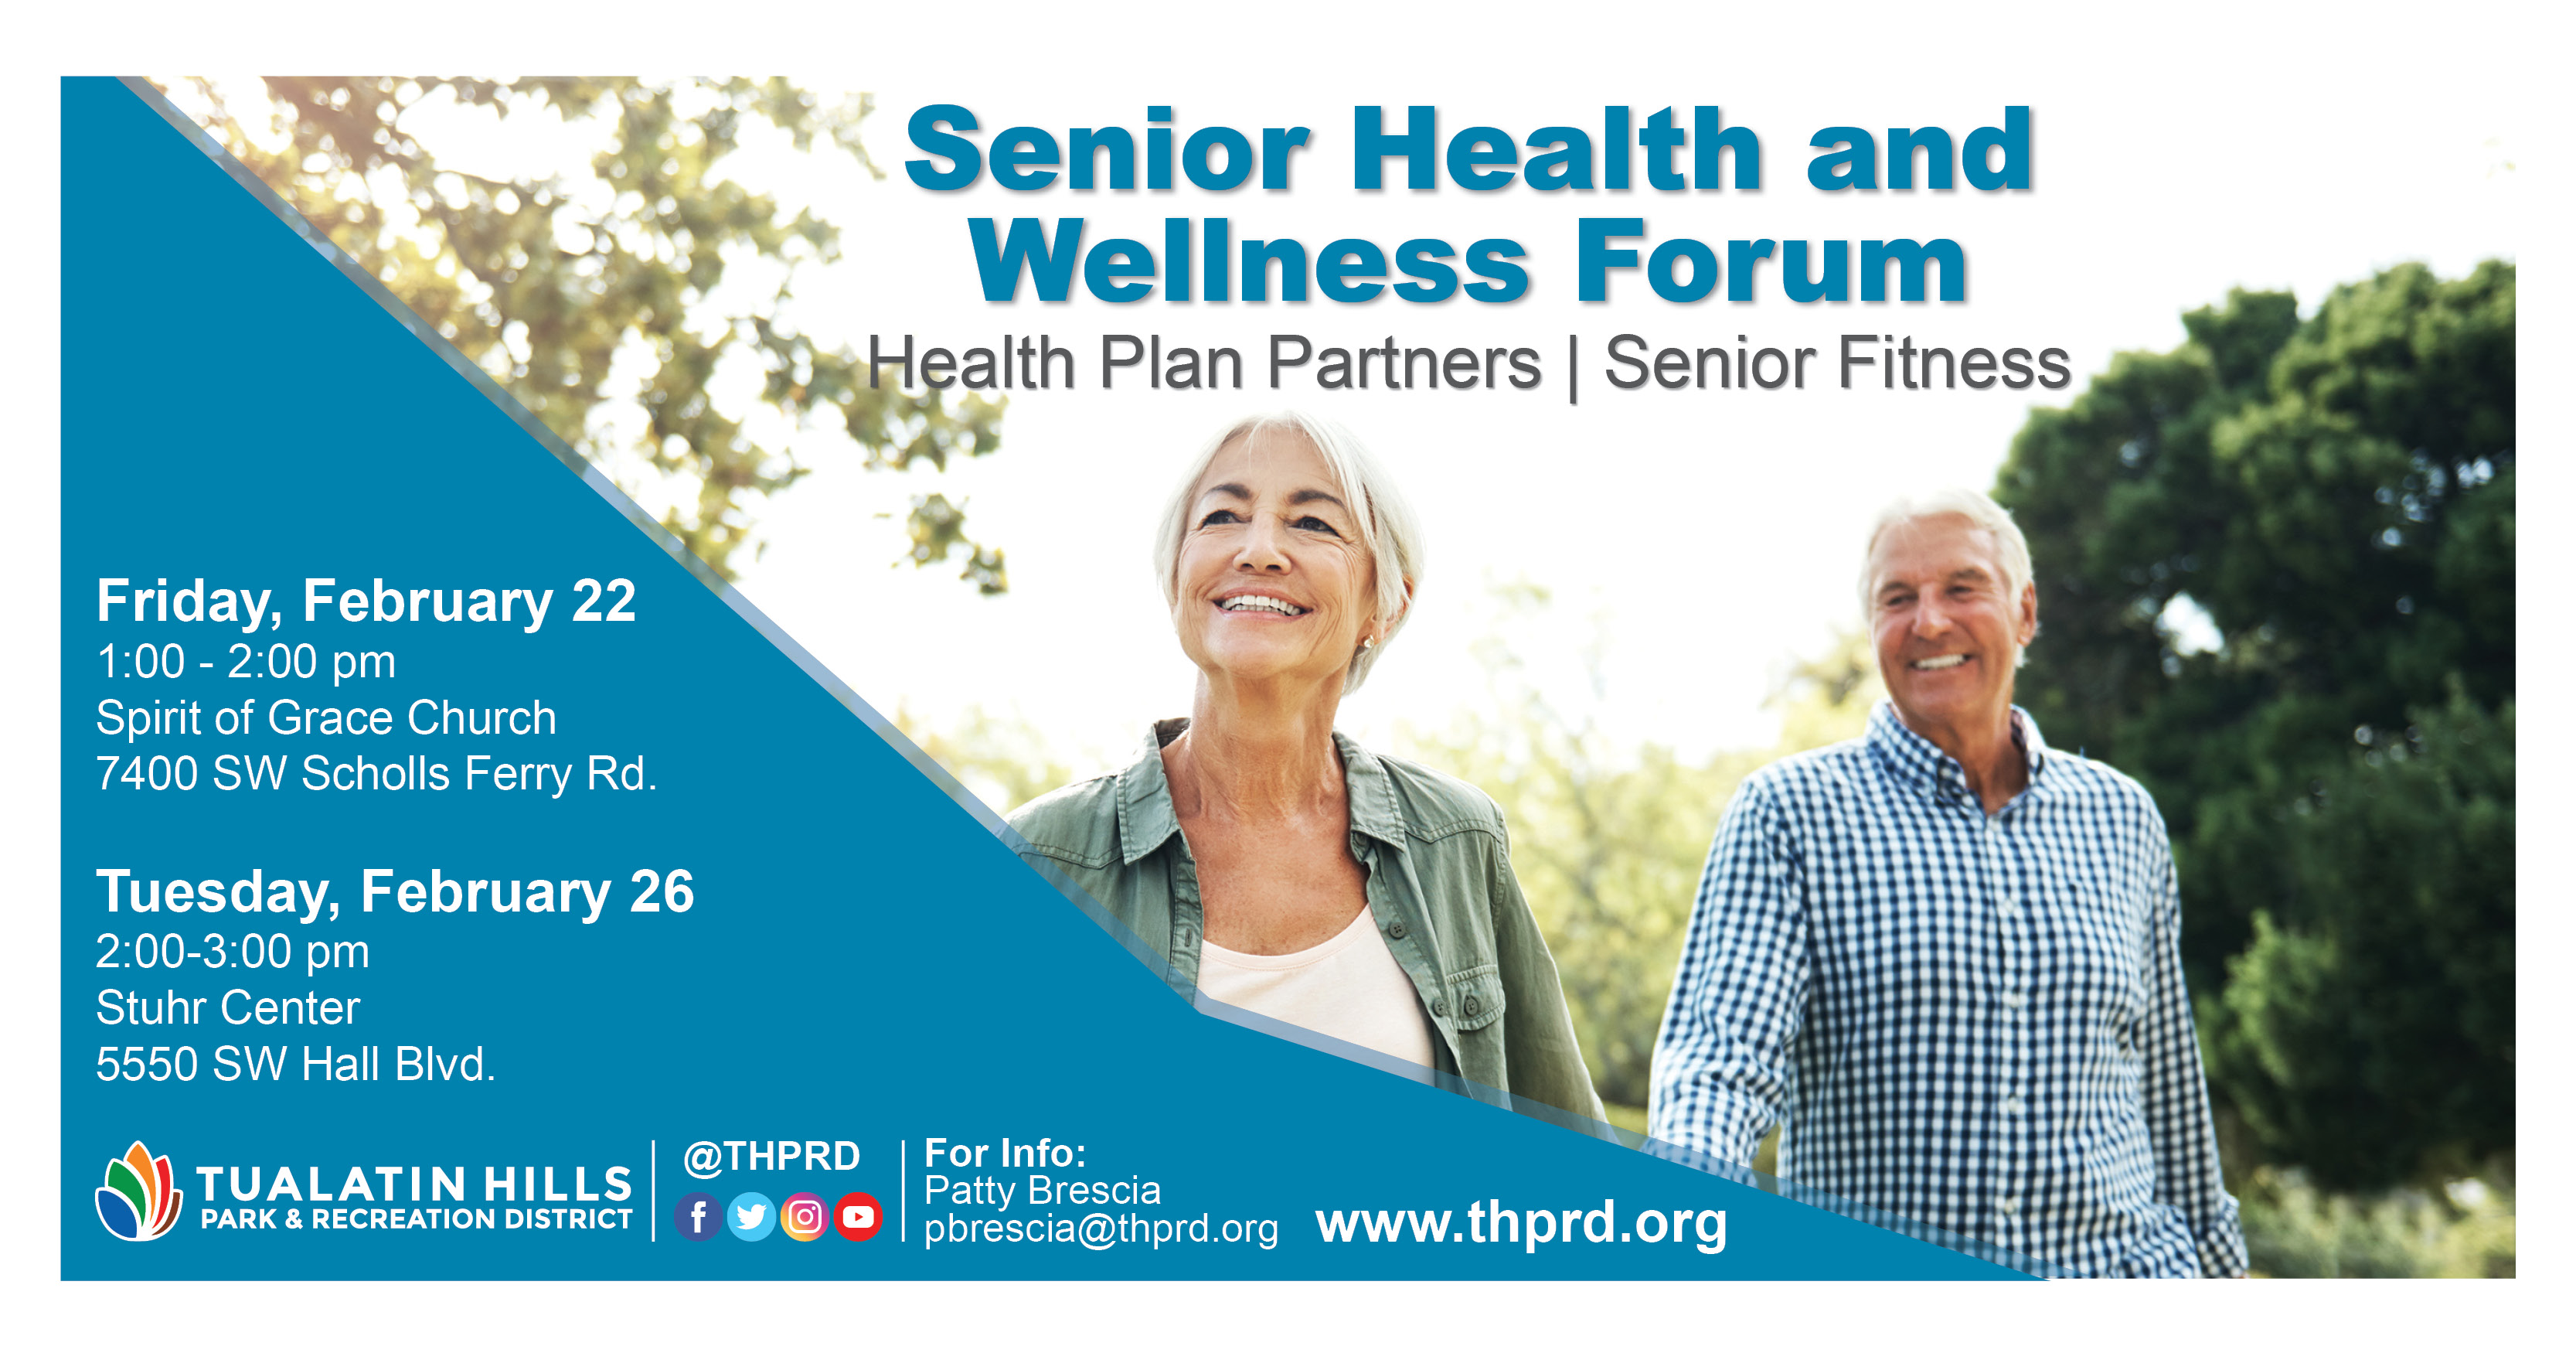 Senior Fitness - Health & Wellness Forum